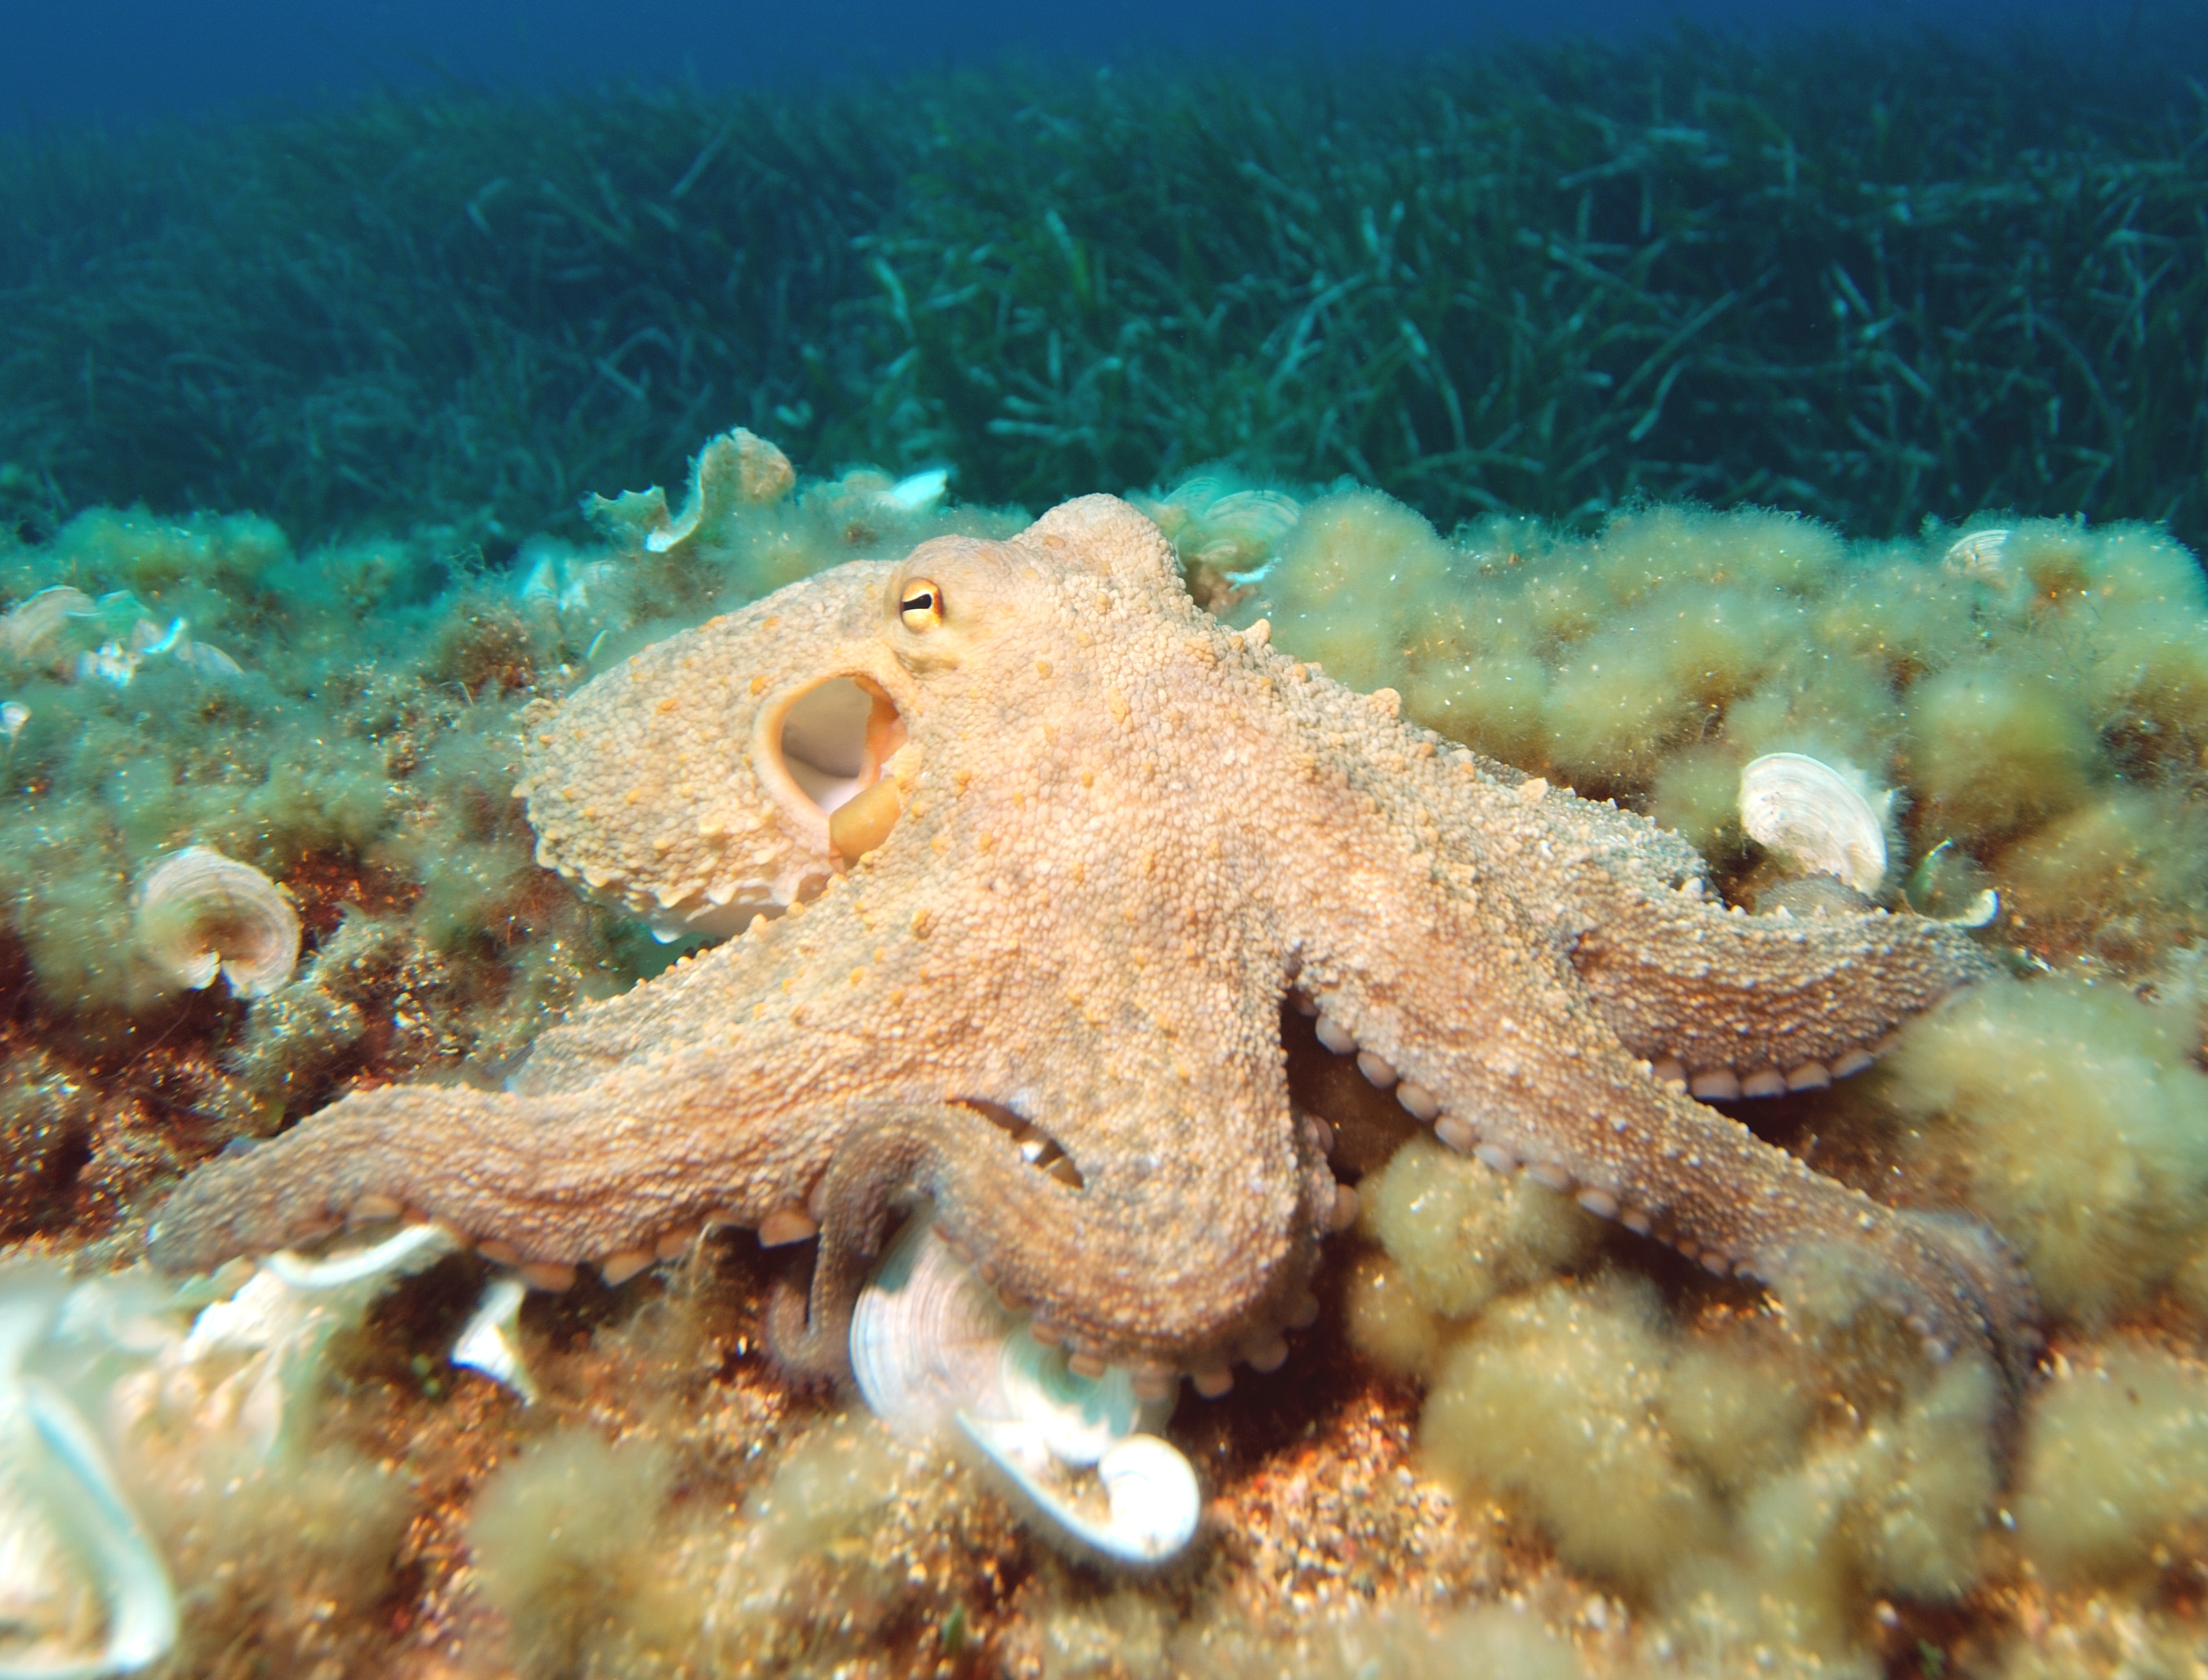 File:Octopus2.jpg - Wikipedia